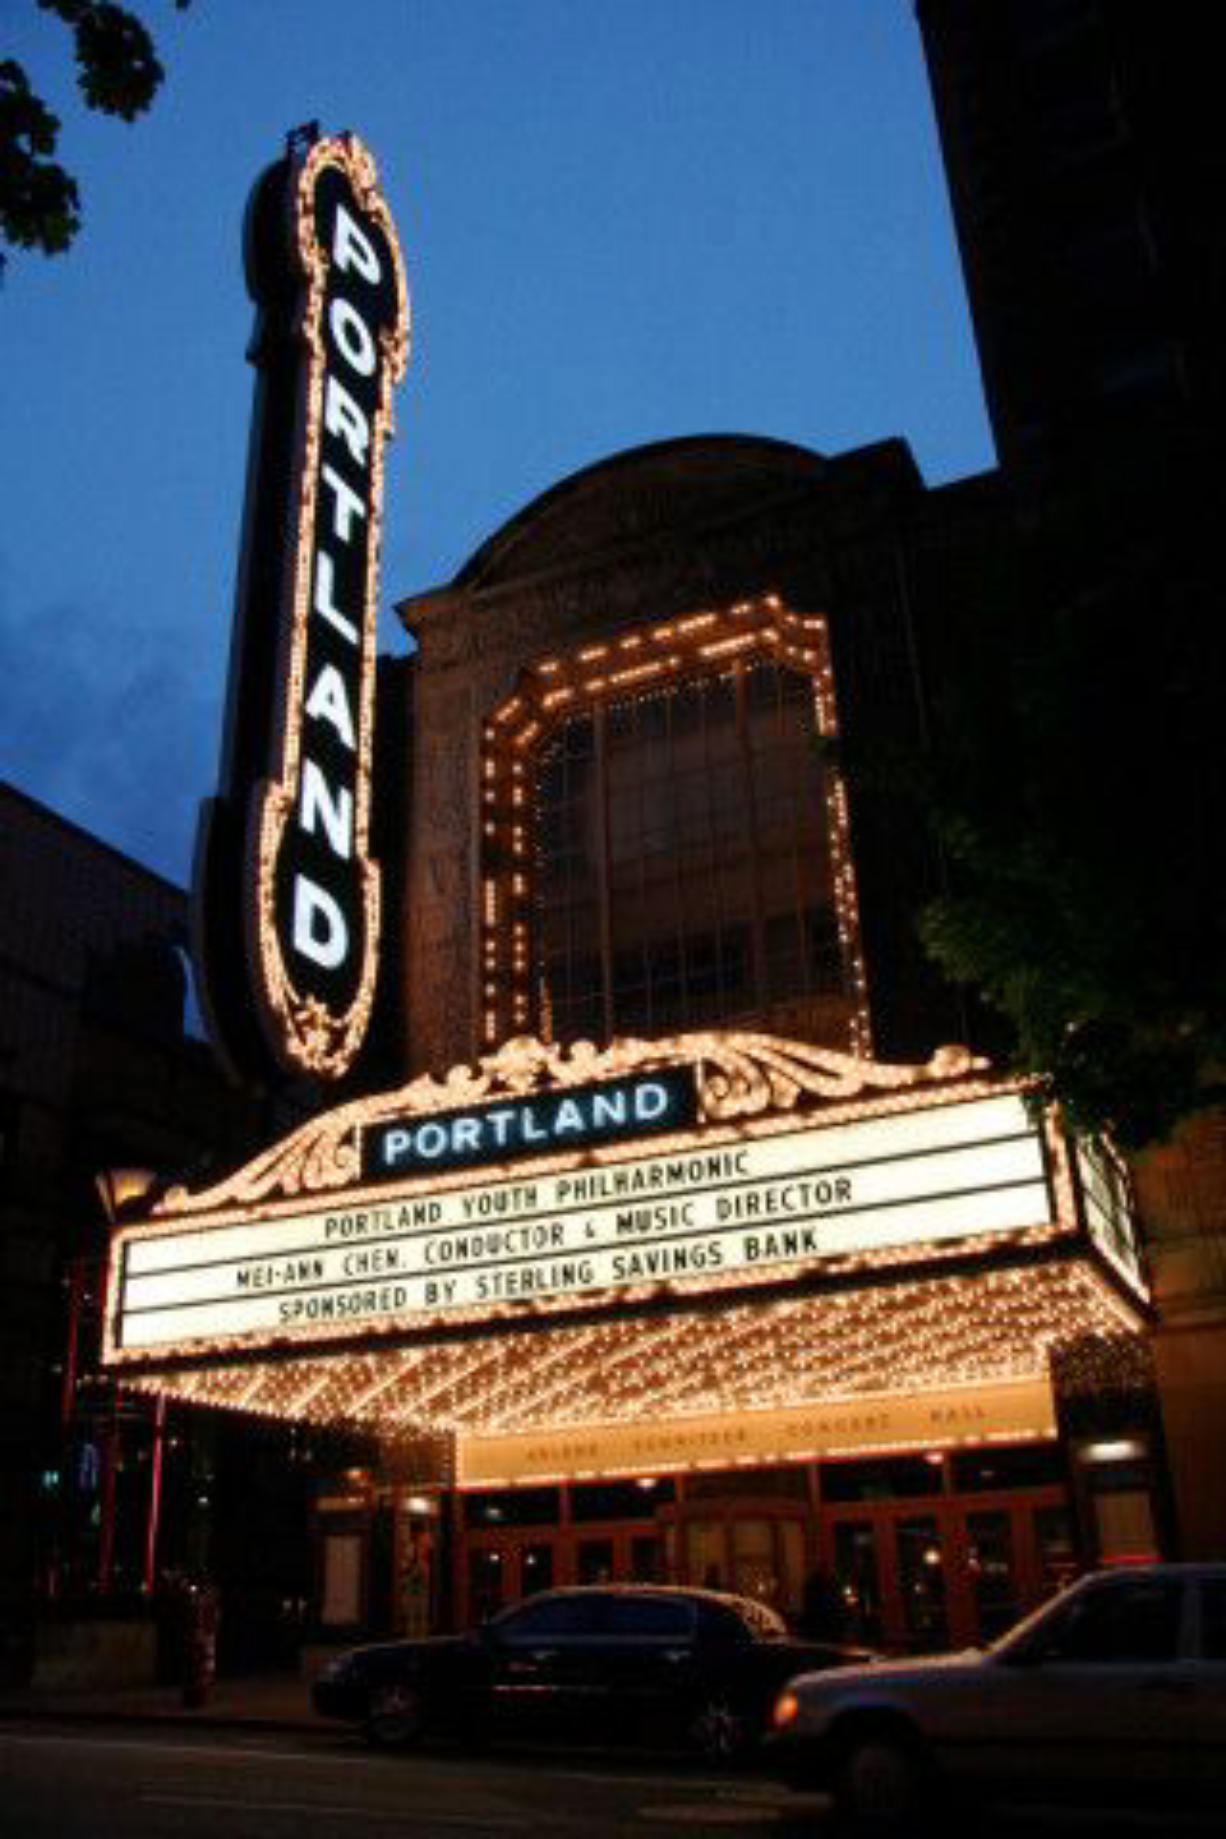 The Arlene Schnitzer Concert Hall is one of 5 venues covered by the organization.